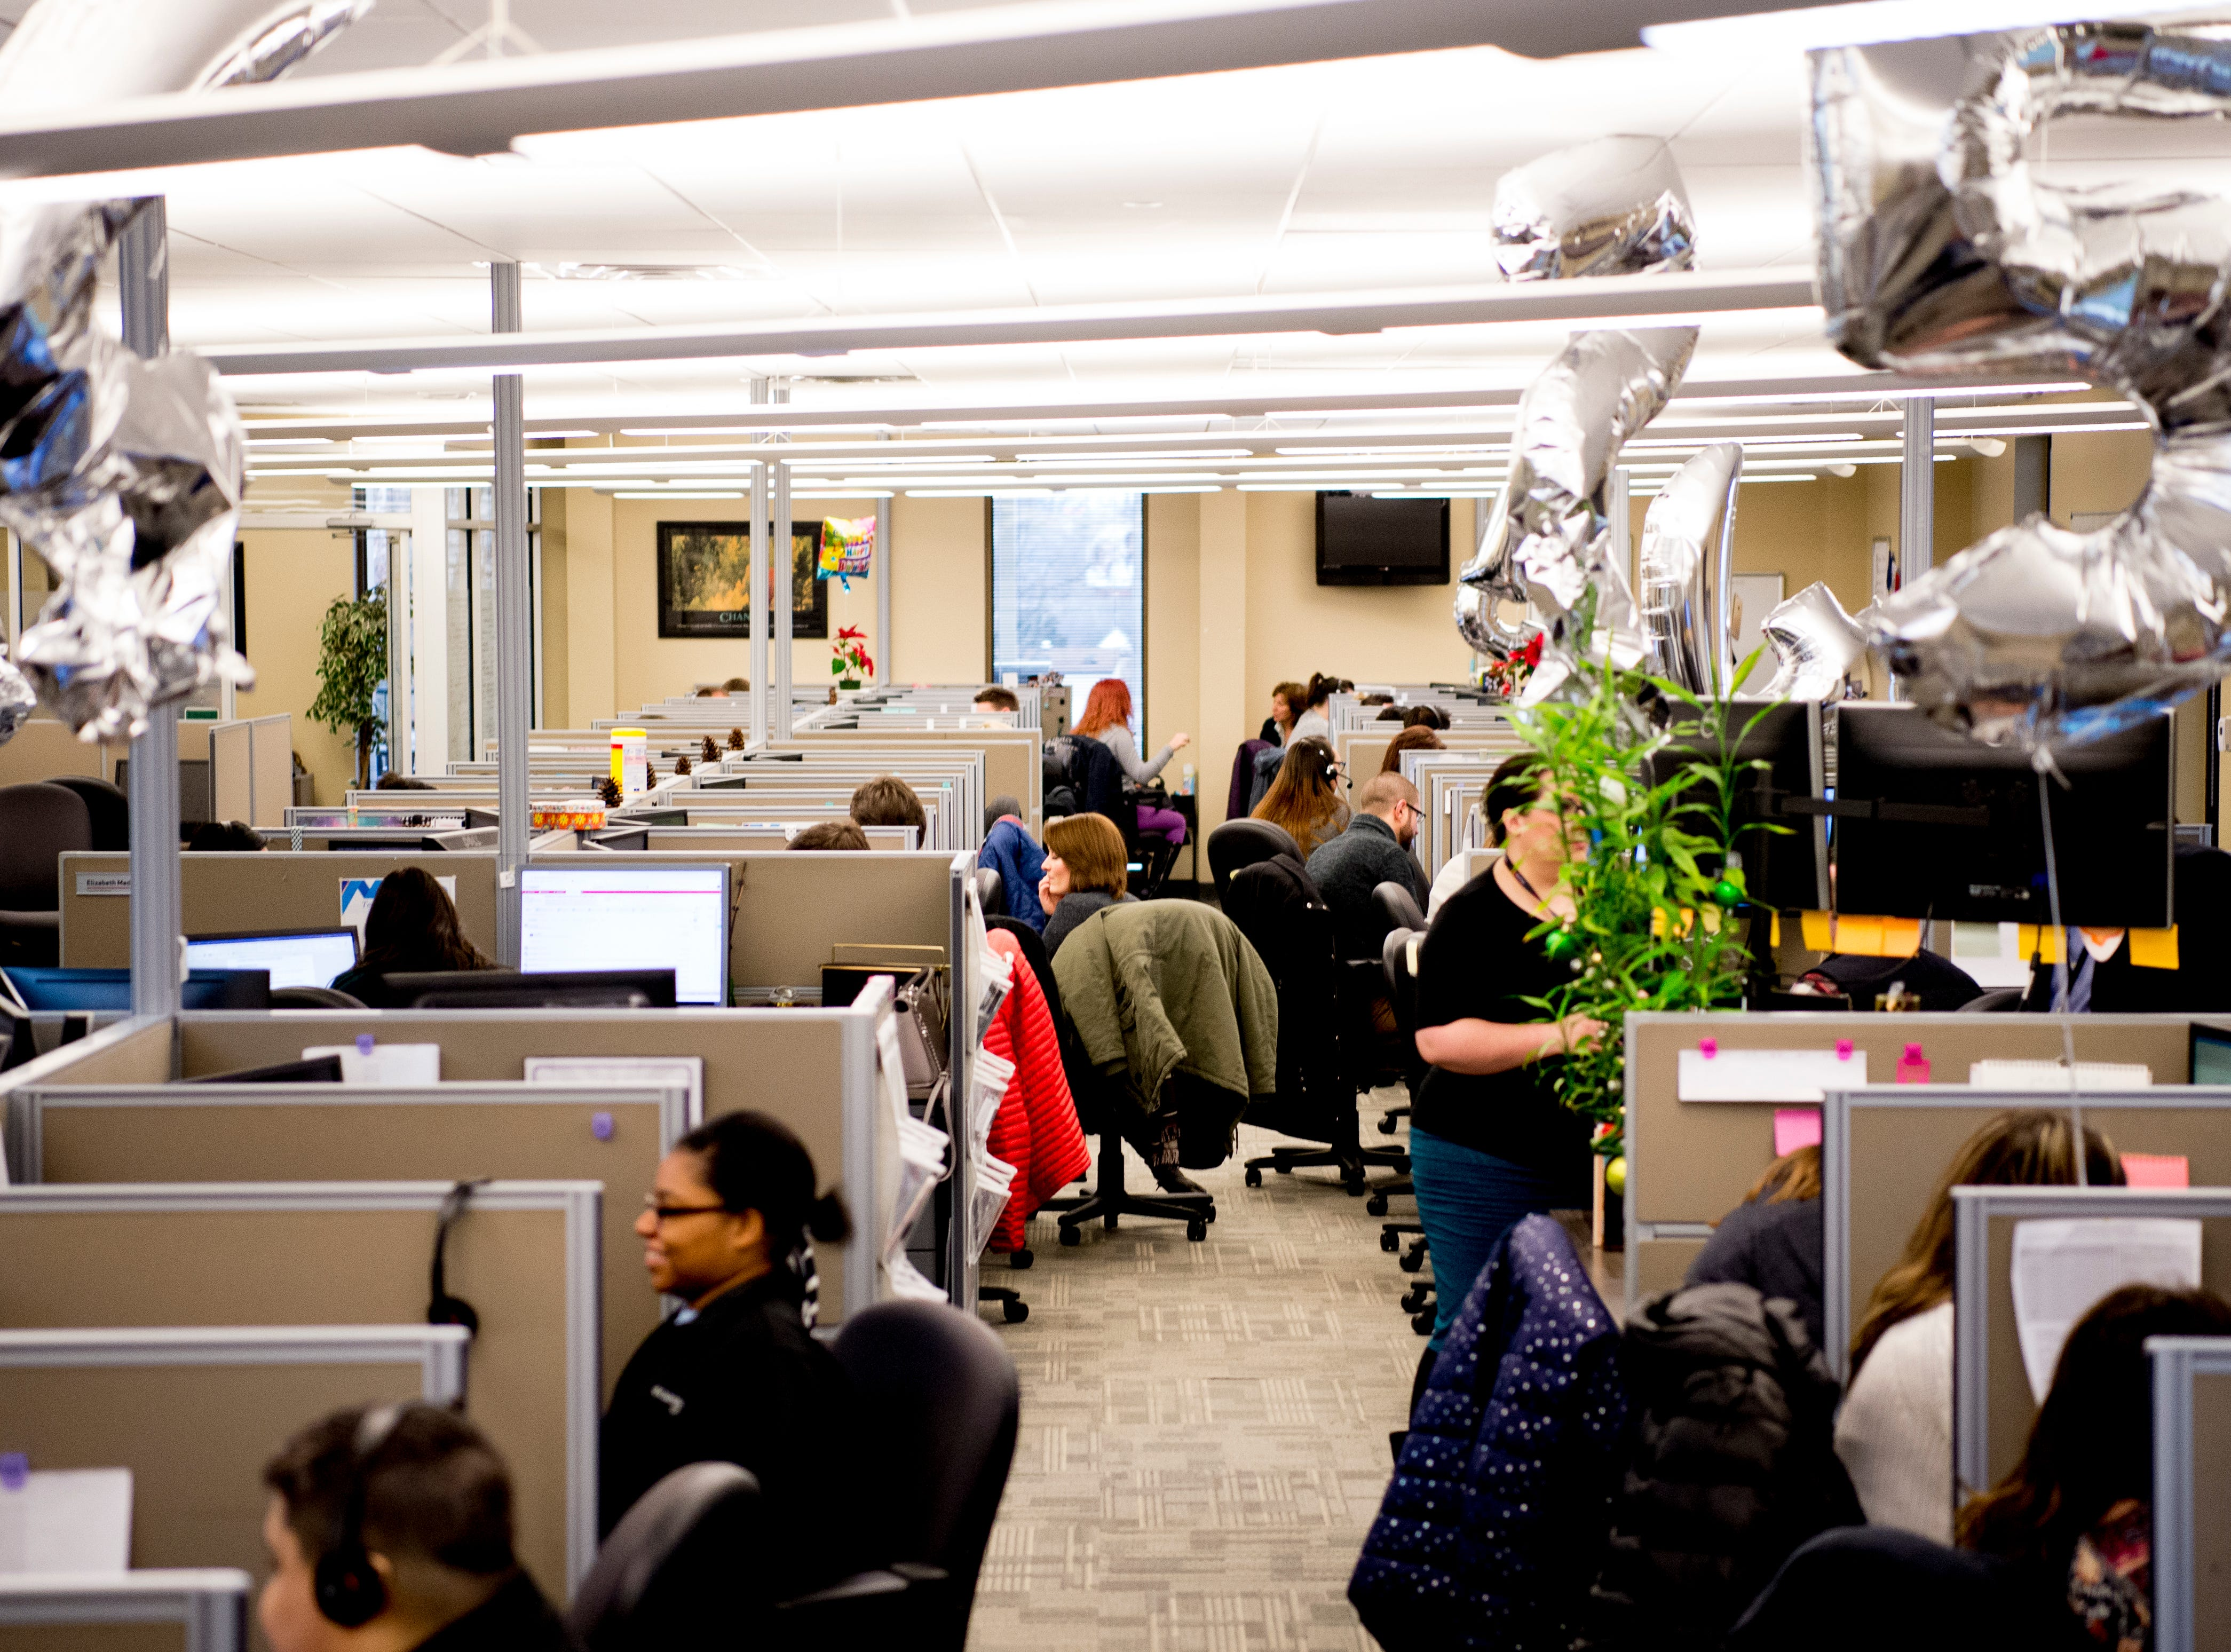 The call center employs around 180 people at the Cellular Sales headquarters on 9040 Executive Park Drive in West Knoxville, Tennessee on Wednesday, January 16, 2019. An authorized agent of Verizon Wireless, Cellular Sales specializes in retail and support for over 700 of Verizon stores in 42 states.